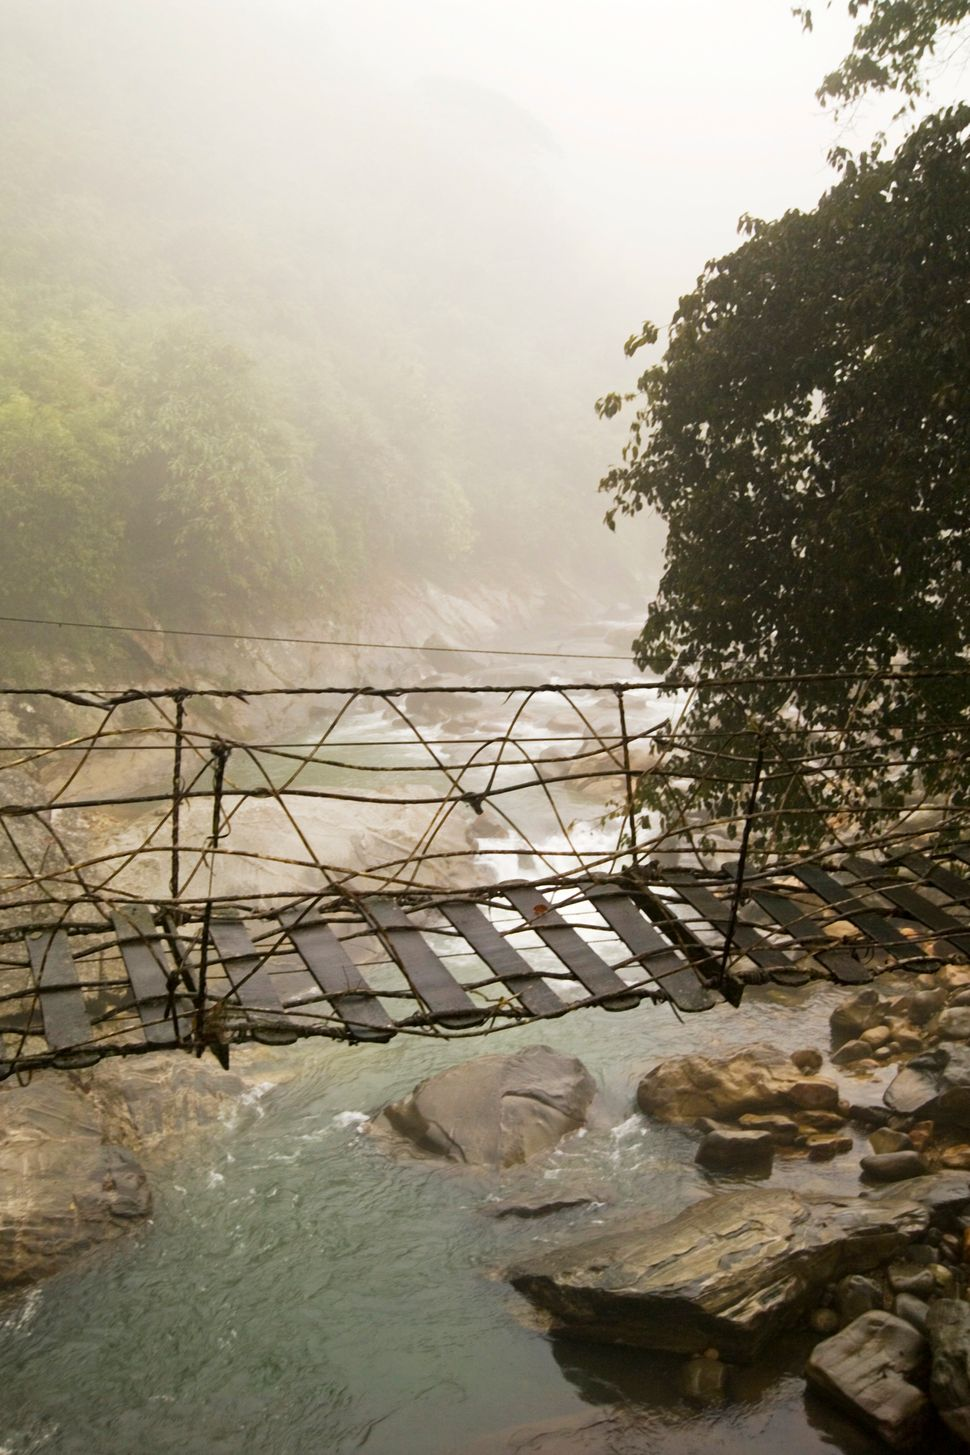 Footbridge in Northern Hilltribe trekking city of Moung Mon on the border of China (Sapa Region).